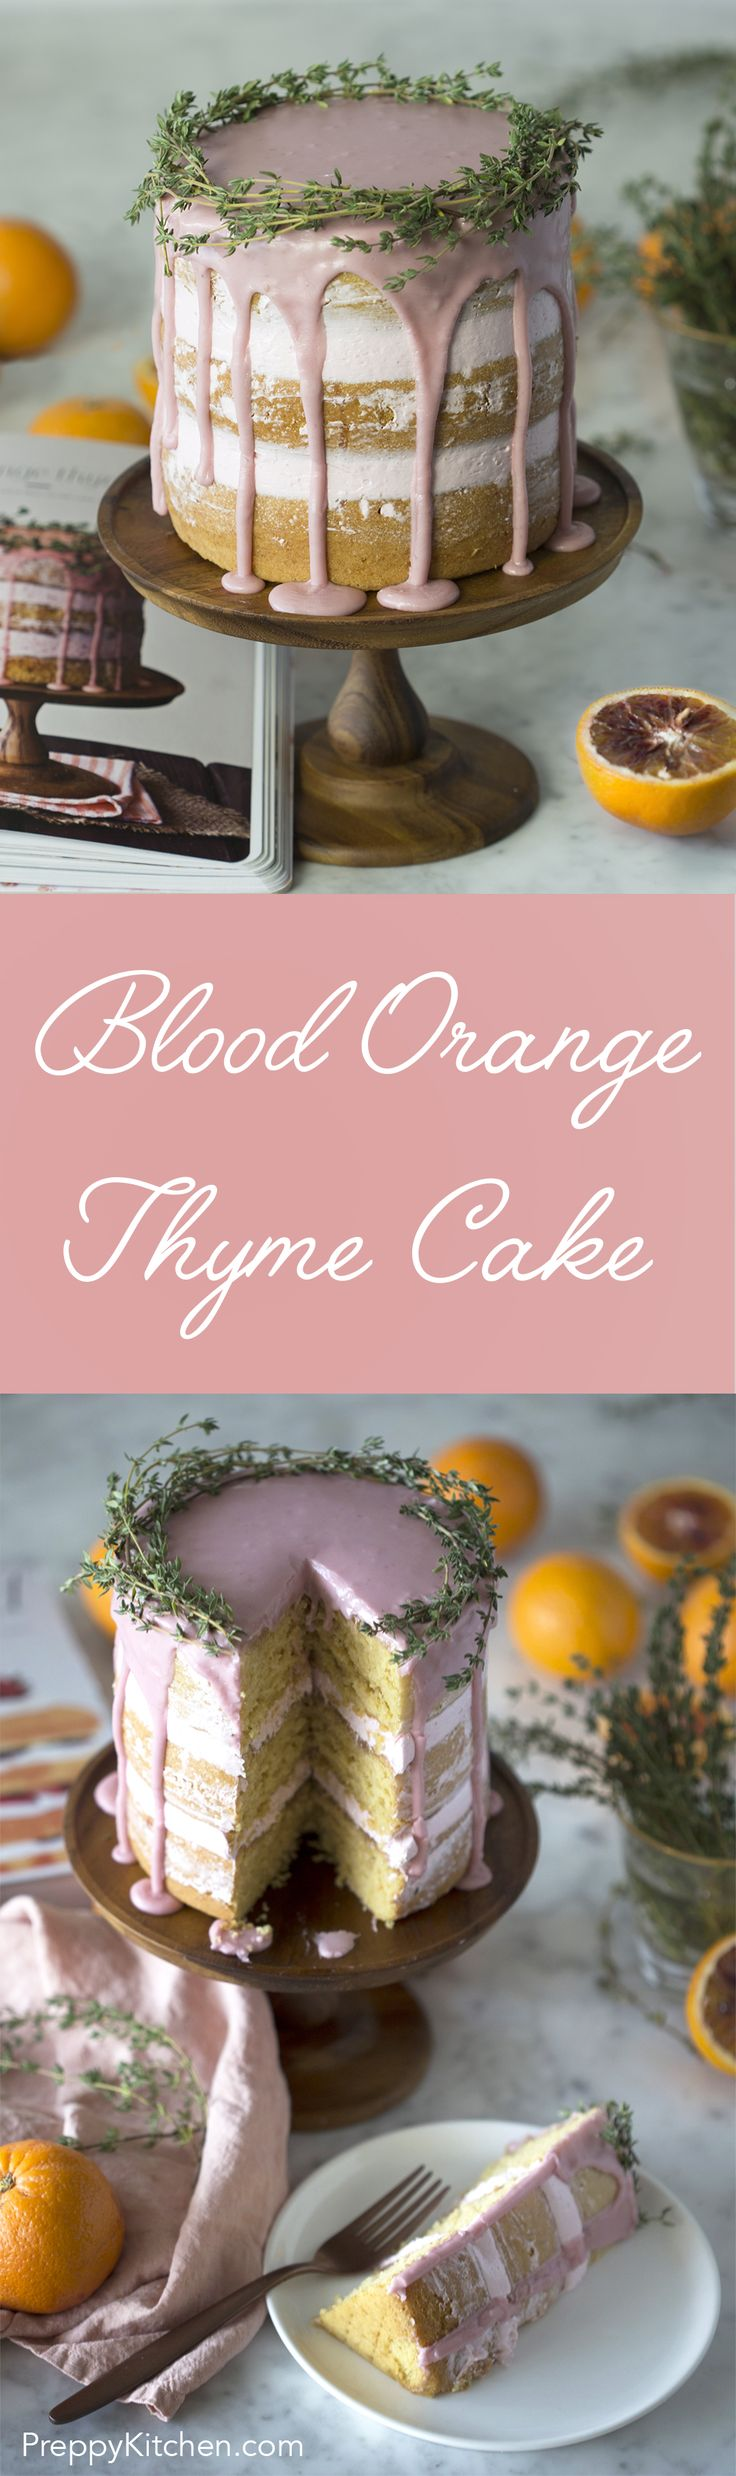 This amazing blood orange thyme cake is one of the recipes in Tessa Huff's new book Layered.  via @preppykitchen